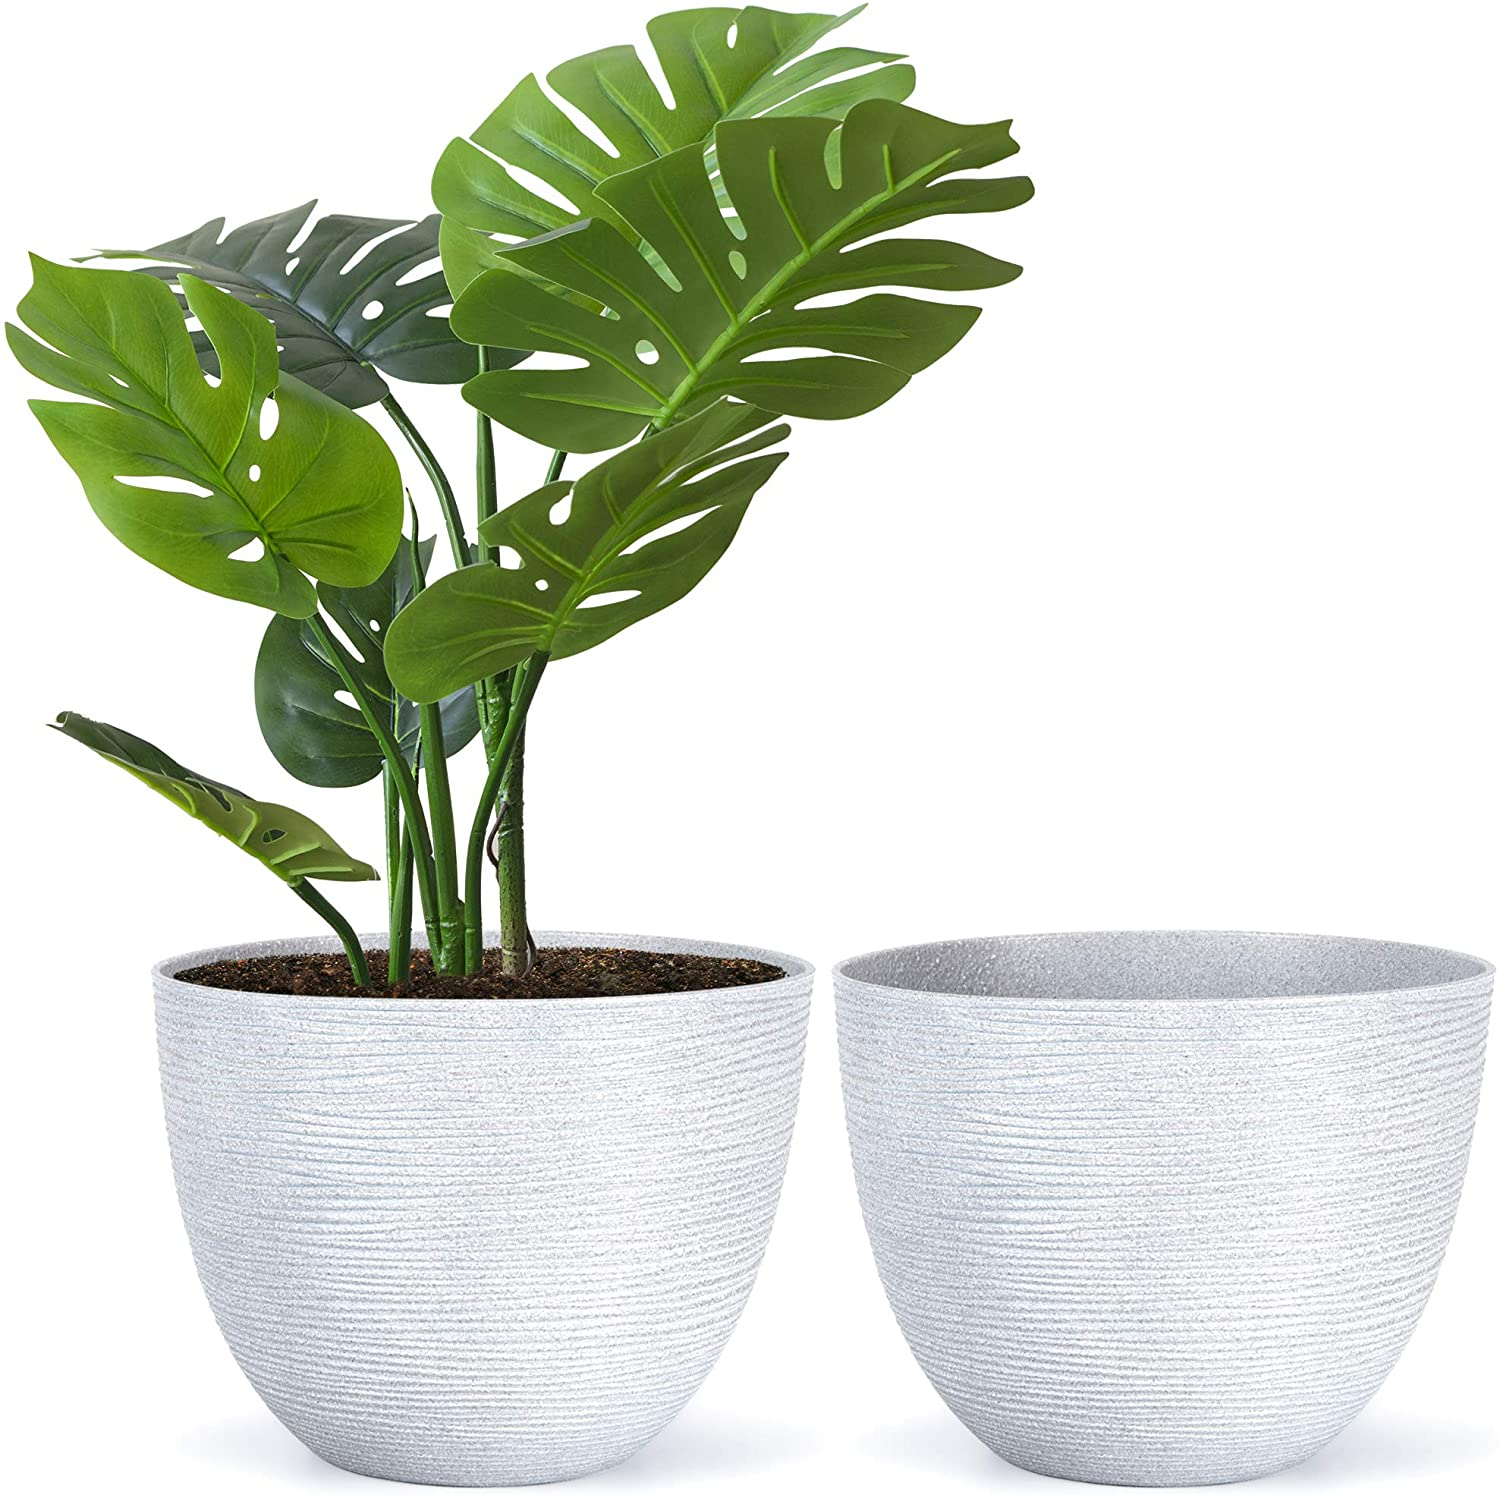 Amazing Creation Large Flower Pots Round Garden Planters for Indoor or Outdoor Gardening, Set of 2 Flowerpots, Big Decorative Stone Grey Plastic Plant Holder with Deeper Root Depth, Reusable Potters